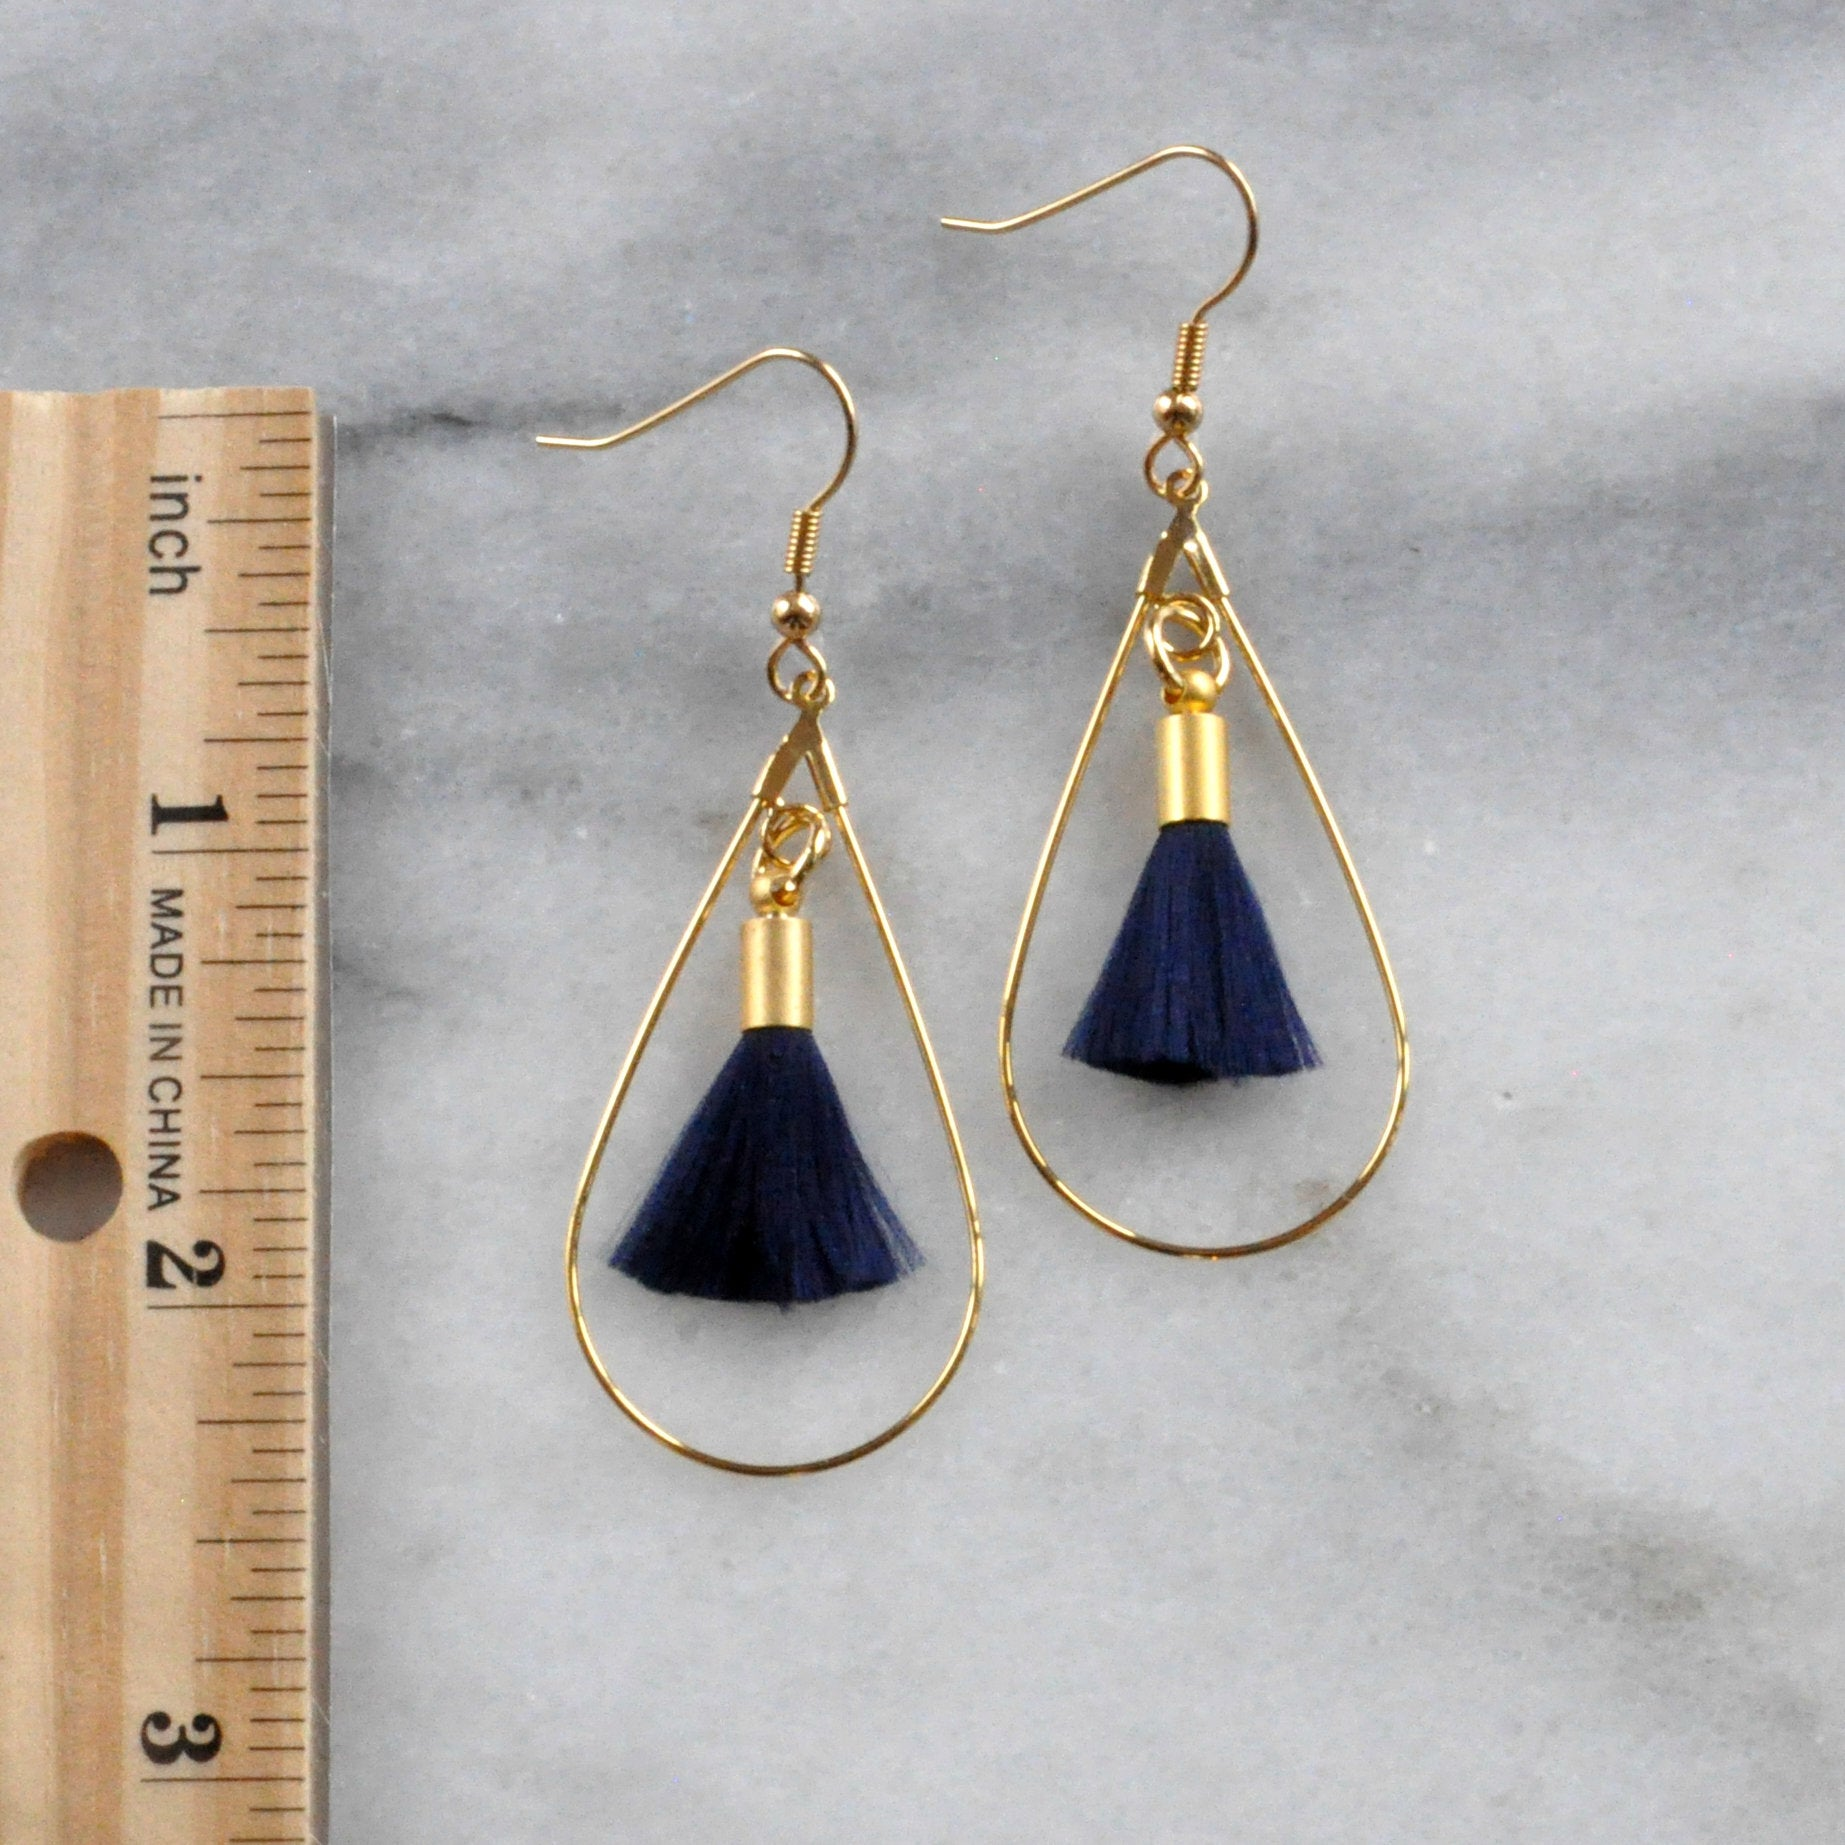 Libby & Smee tassel hoop earrings in Navy Blue in teadrop shape, still life with ruler for scale